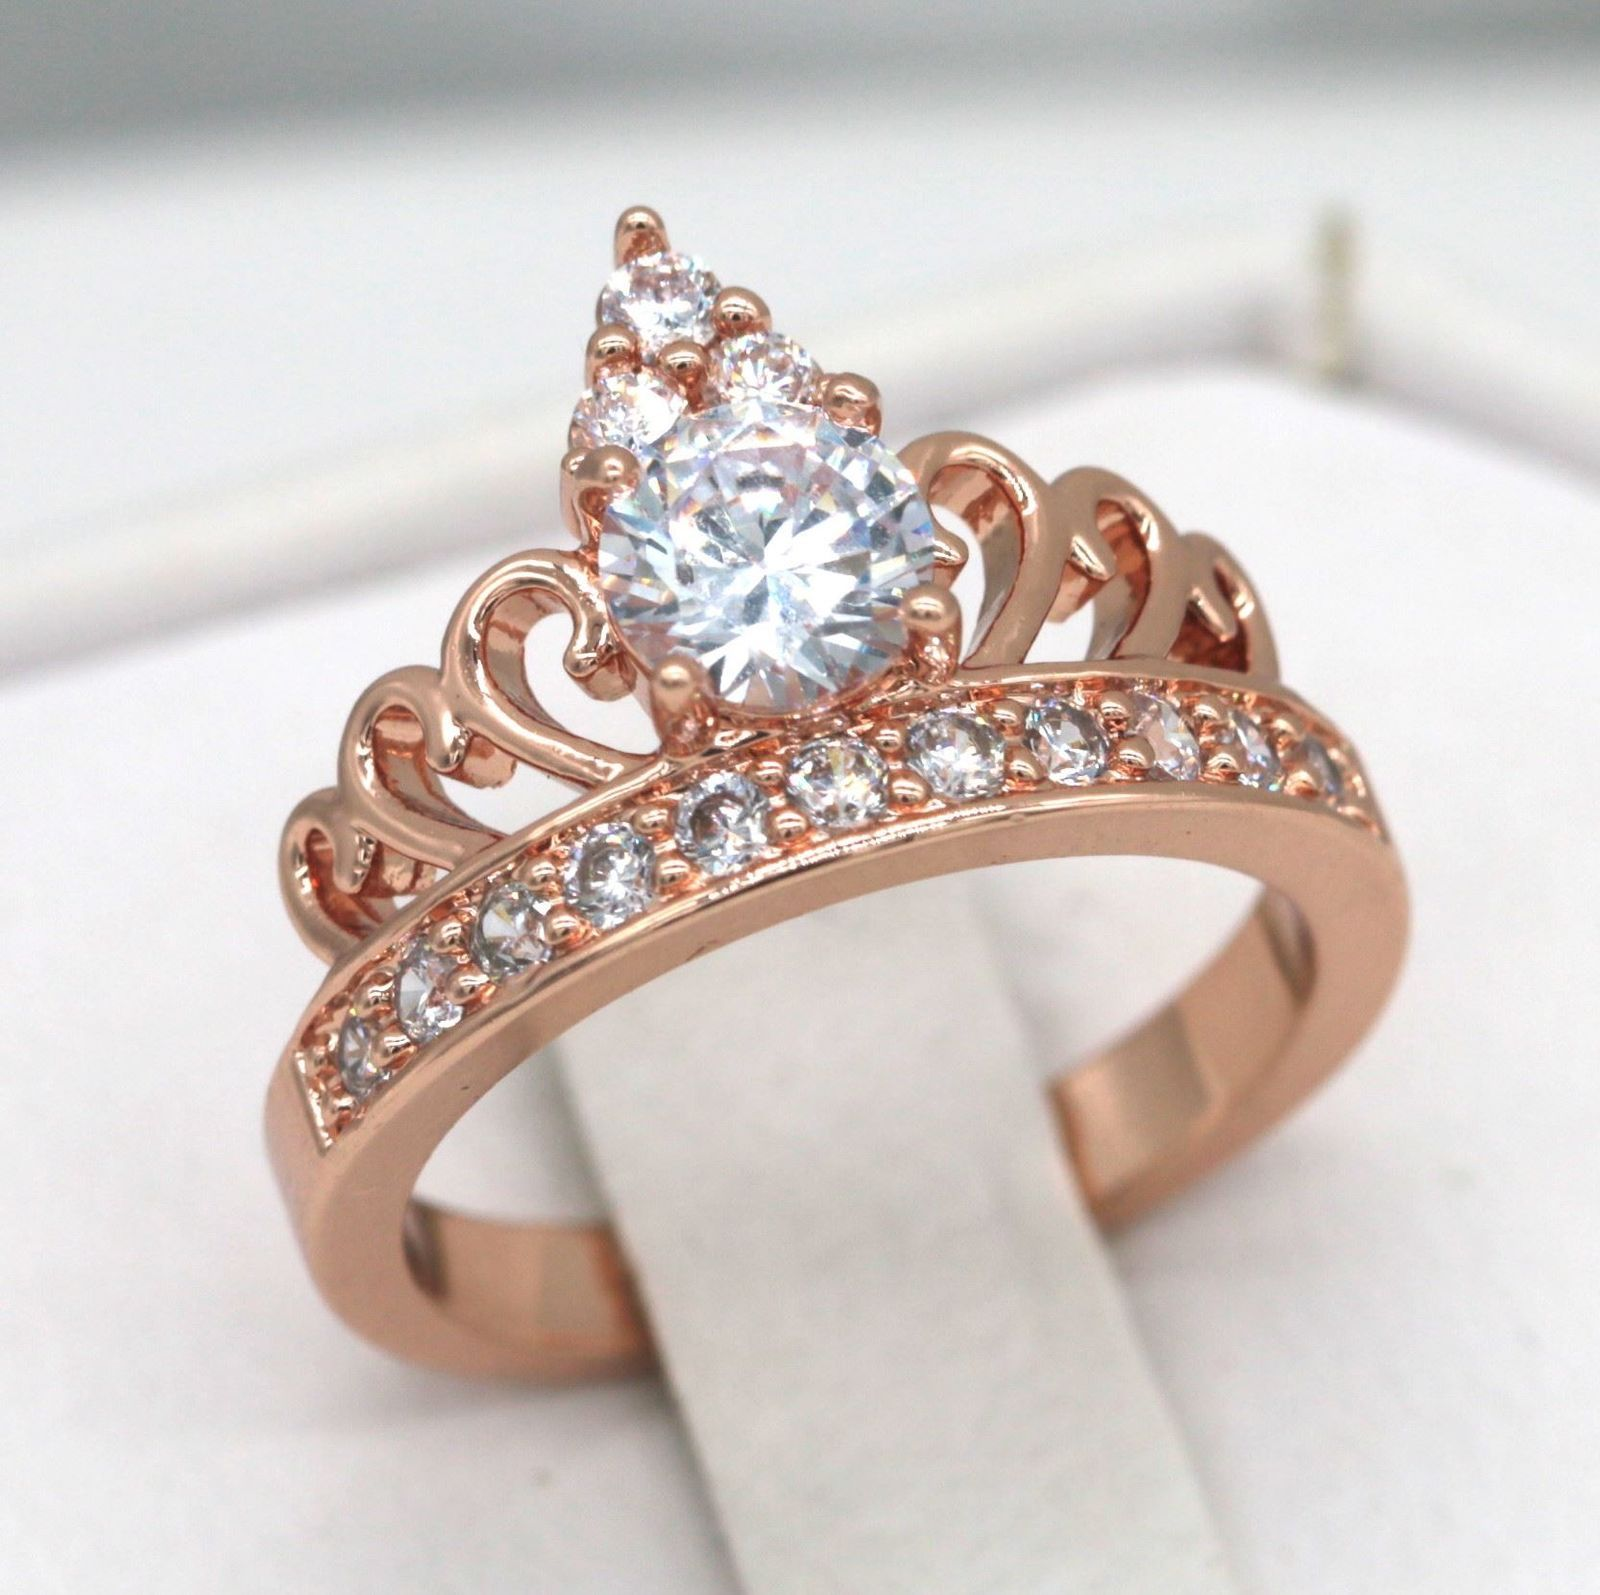 size10 Crown Jewlery 14k Rose Gold Plated Sterling Silver Champagne Cubic Zirconia Cushion Cut Halo Ring Color Black